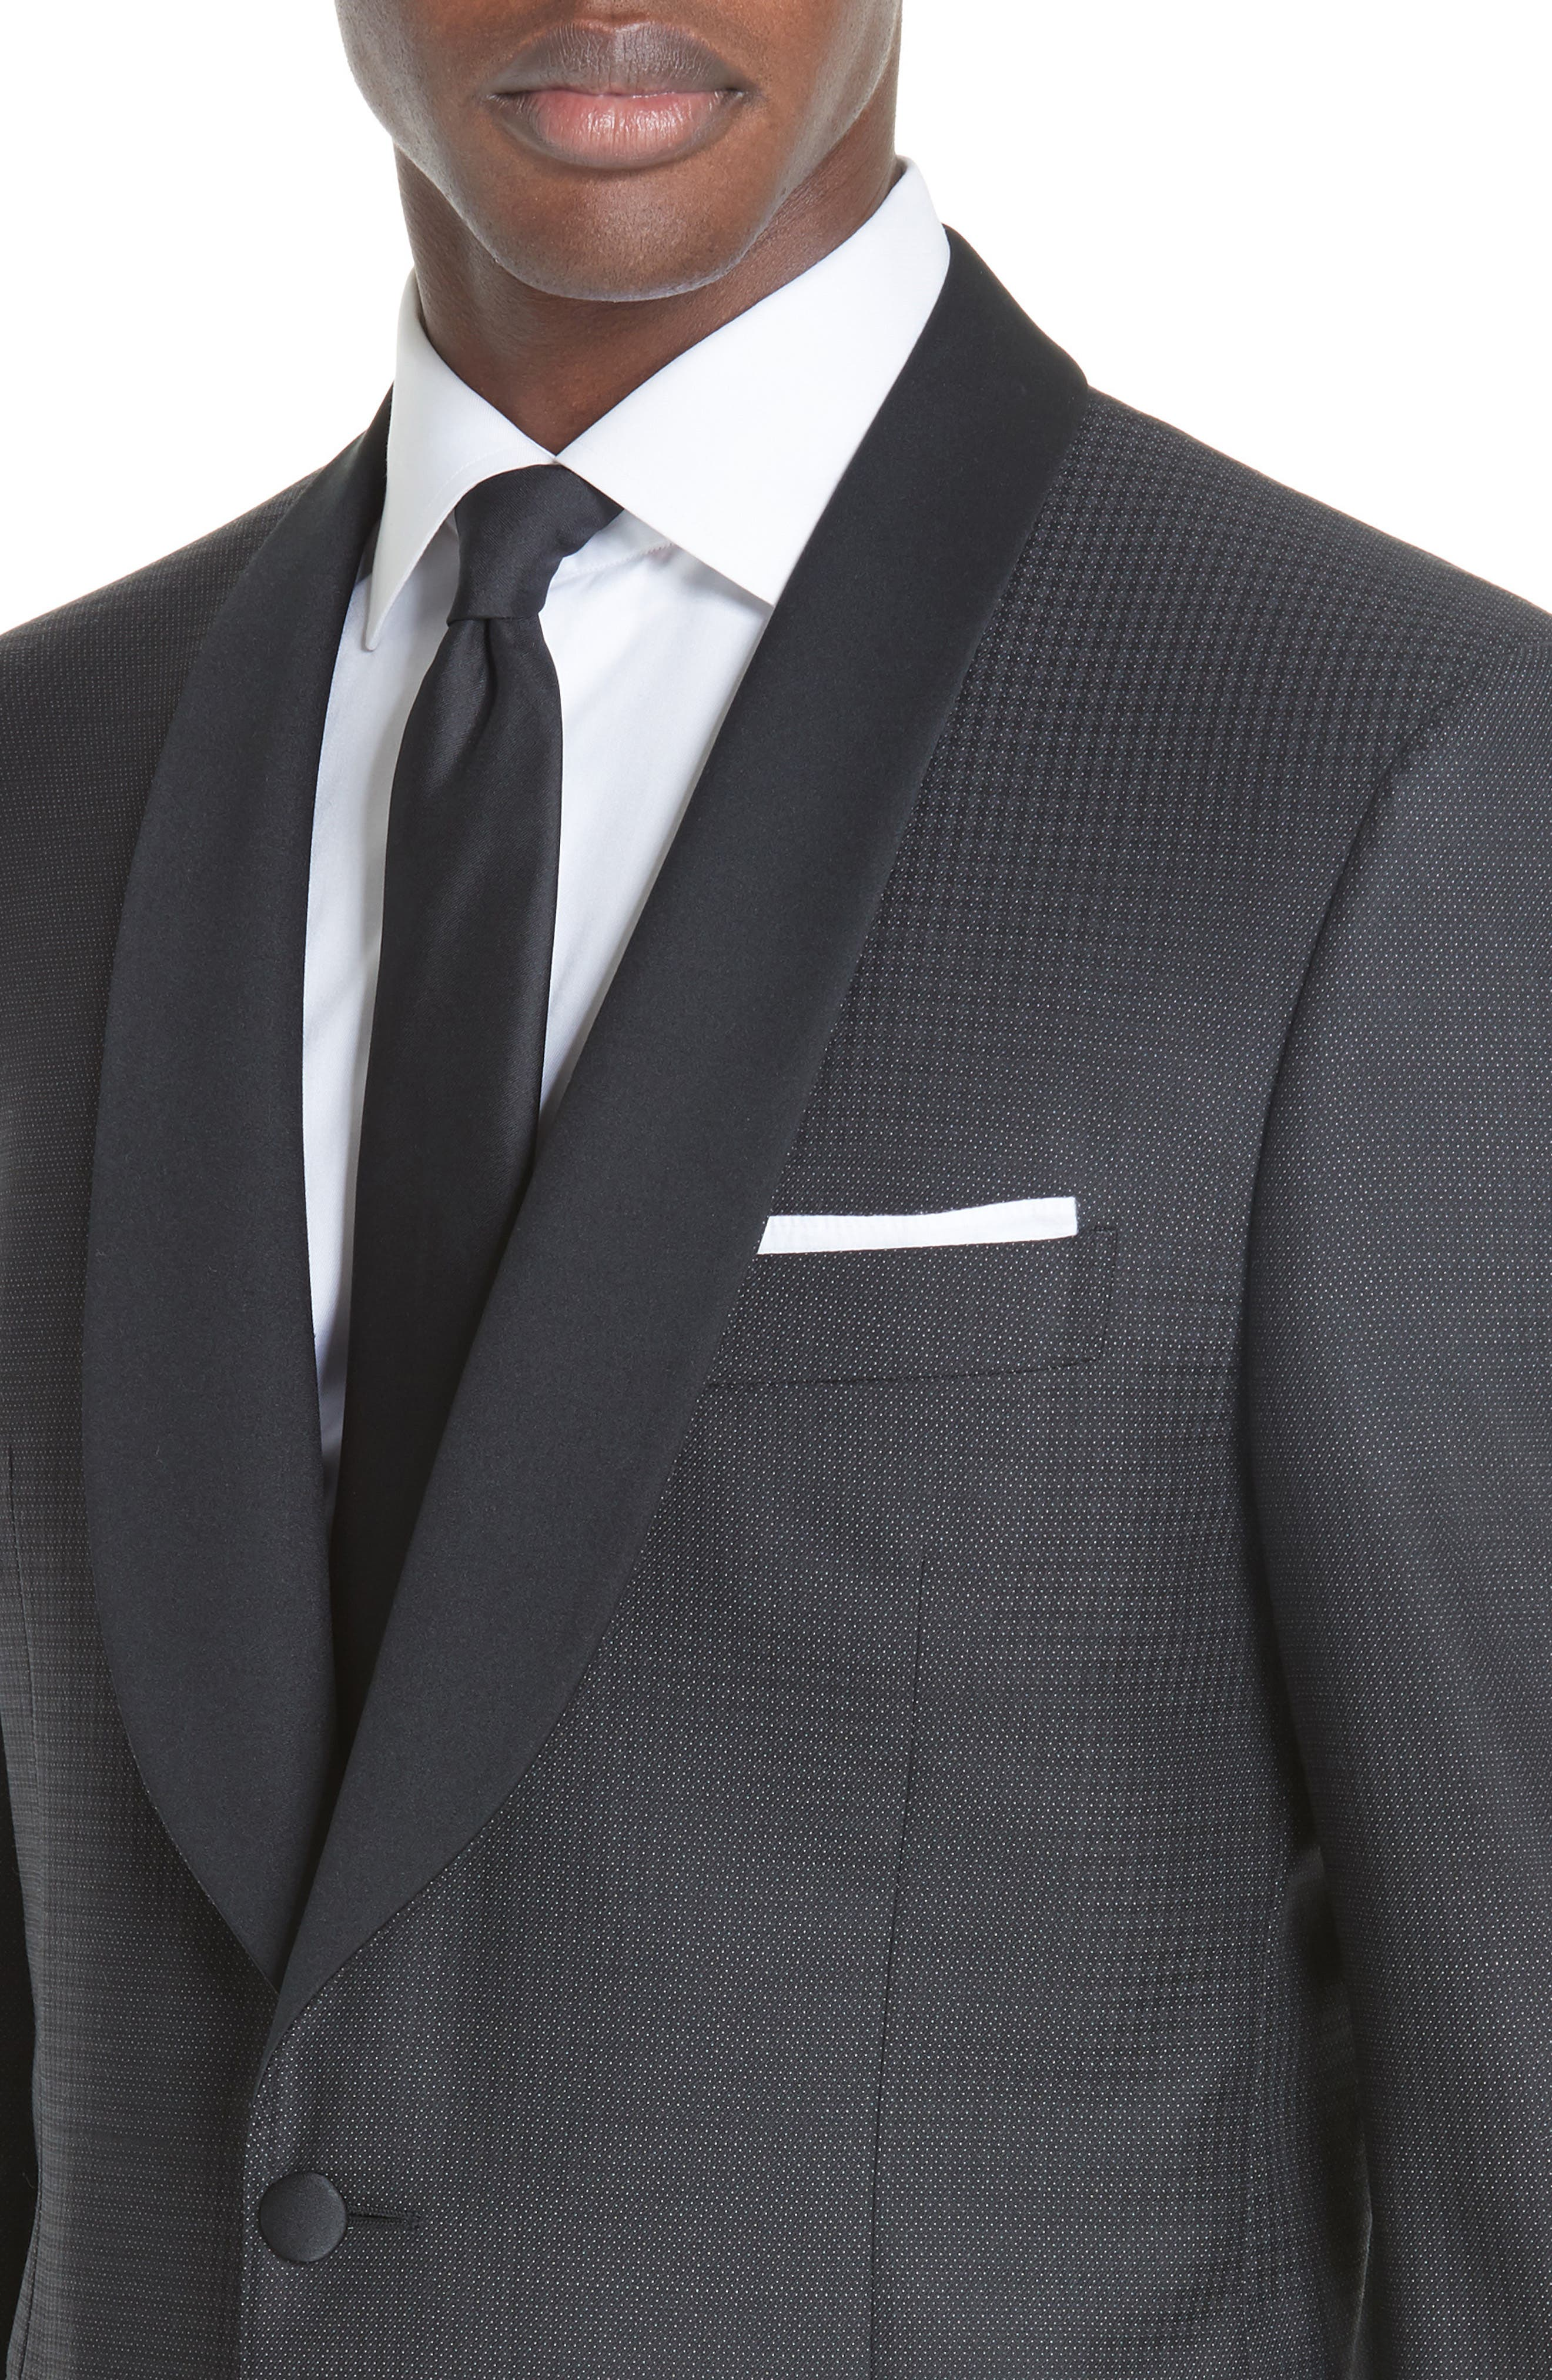 Classic Fit Wool Tuxedo,                             Alternate thumbnail 4, color,                             CHARCOAL